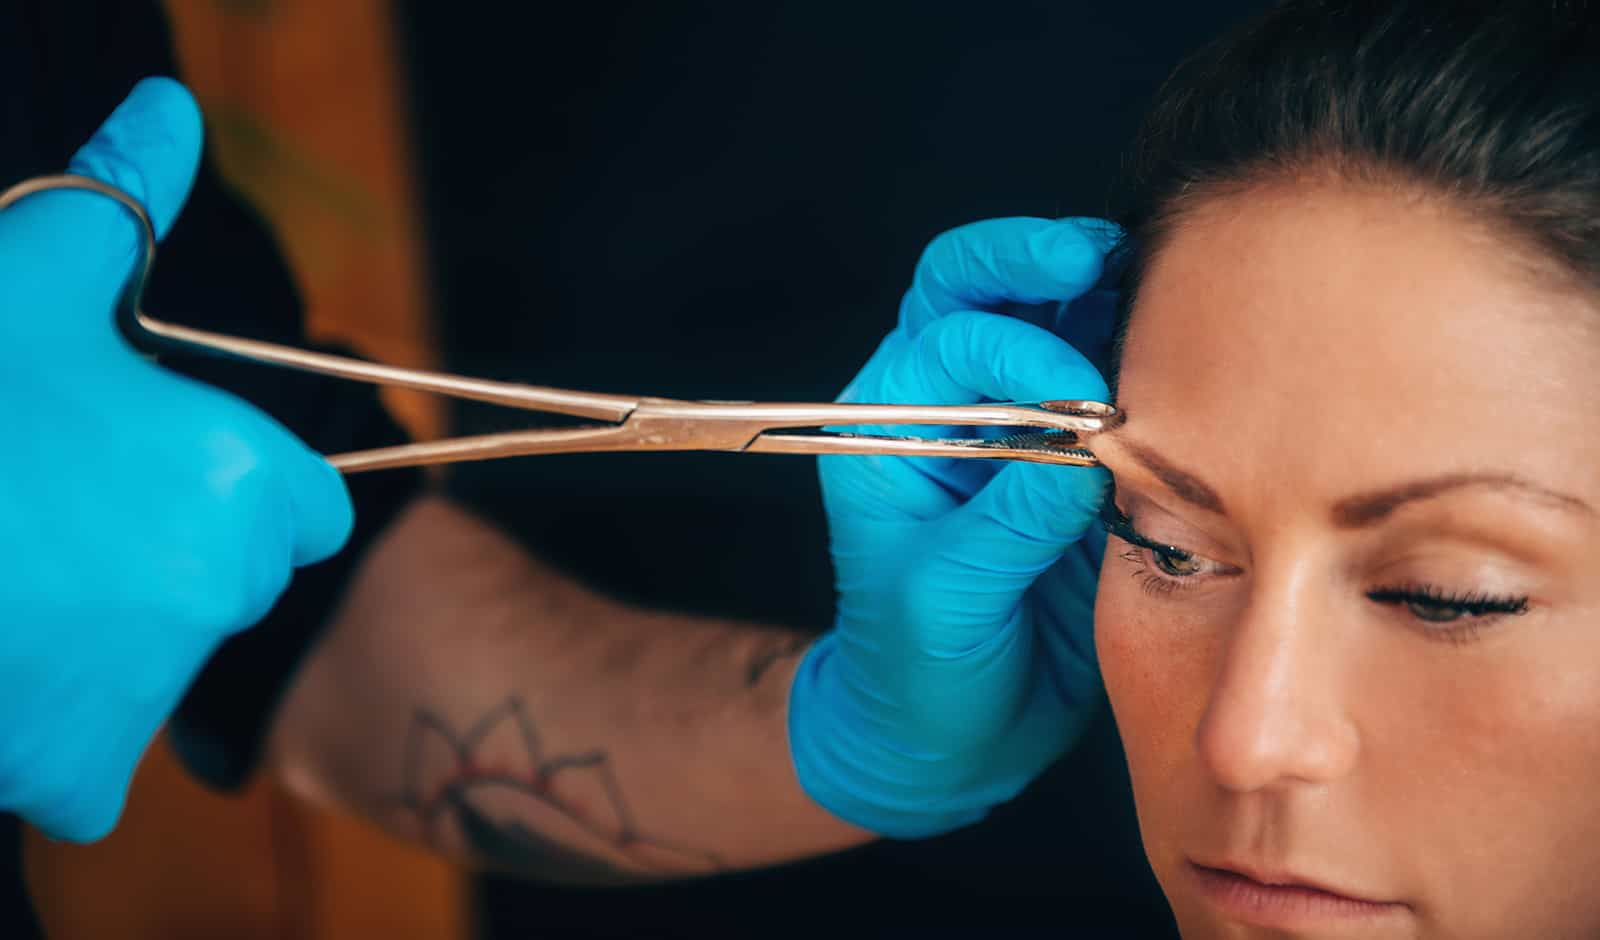 How-To-Prepare-For-Your-First-Body-Piercing-main-image